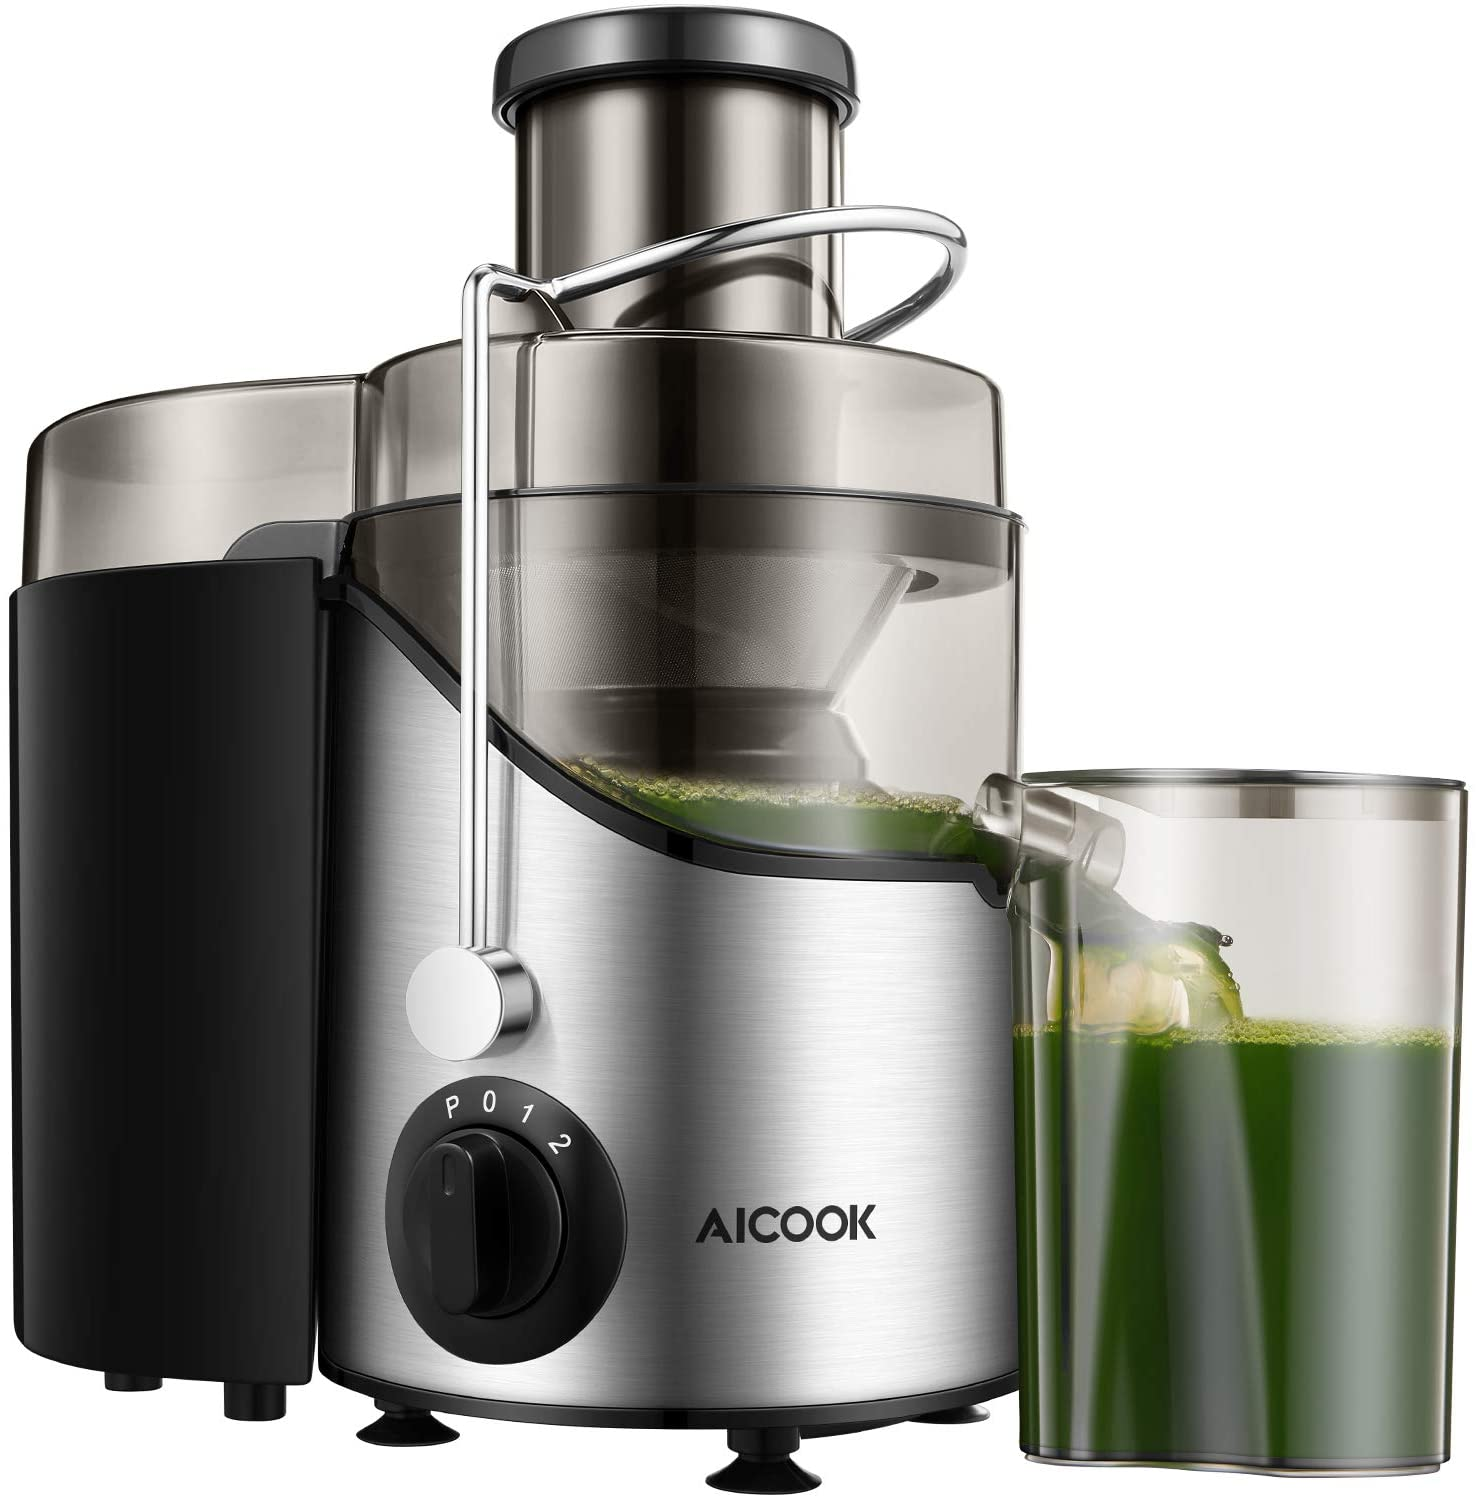 Aicook Juicer Machine with 3 Speed Centrifugal for Fruits and Vegs (with 3-inch Wide Mouth)